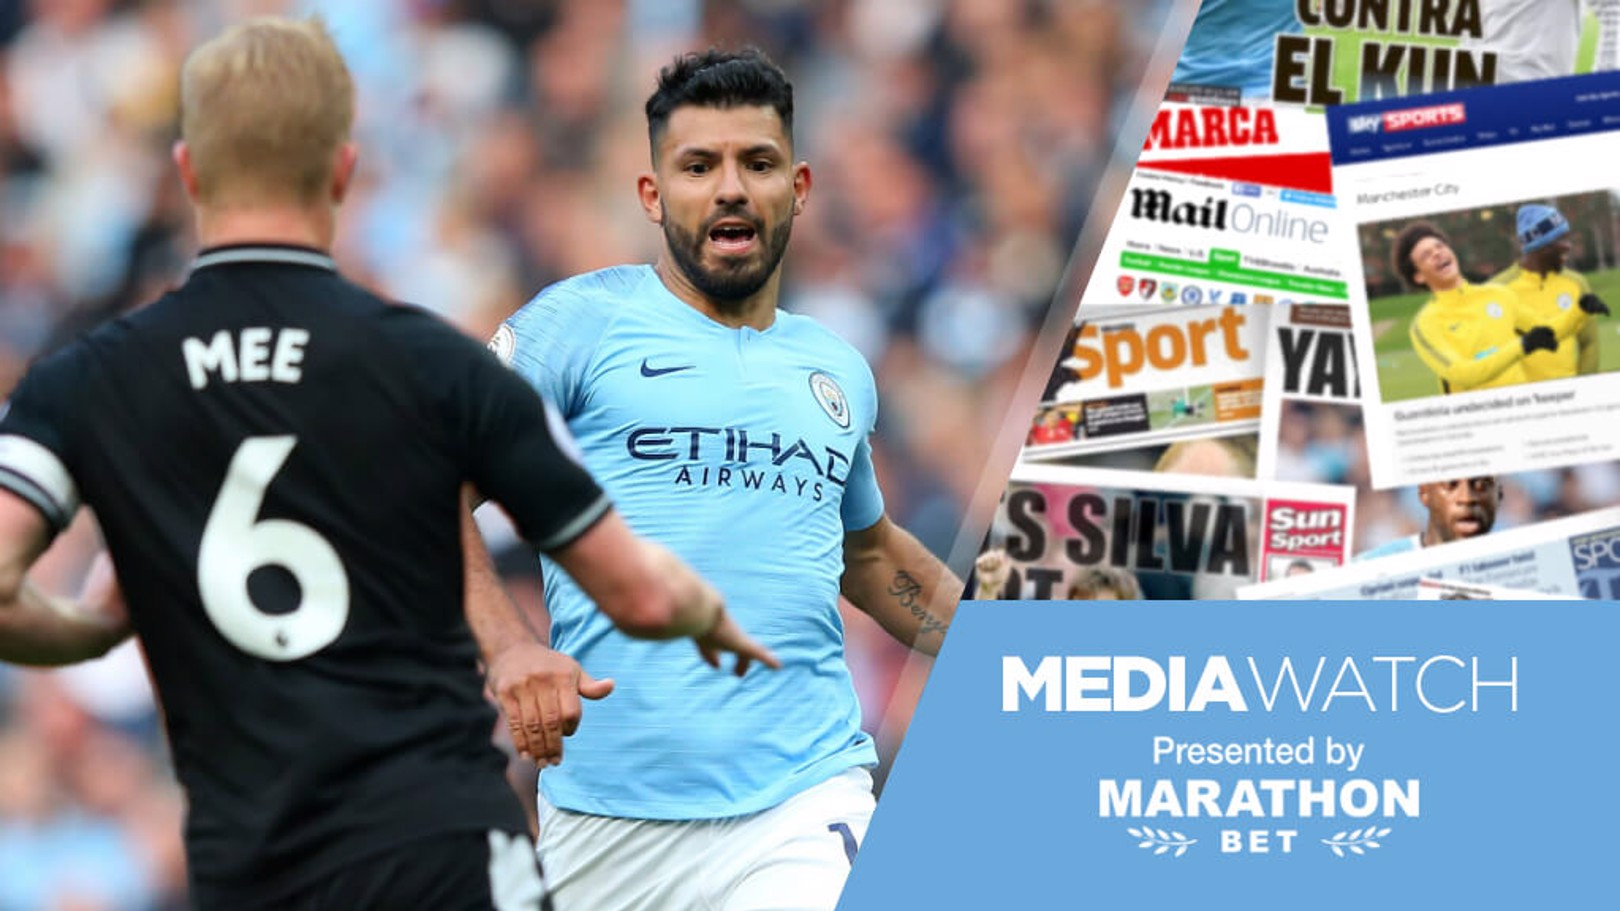 BURNLEY v CITY: Previewing the must-win Premier League clash...